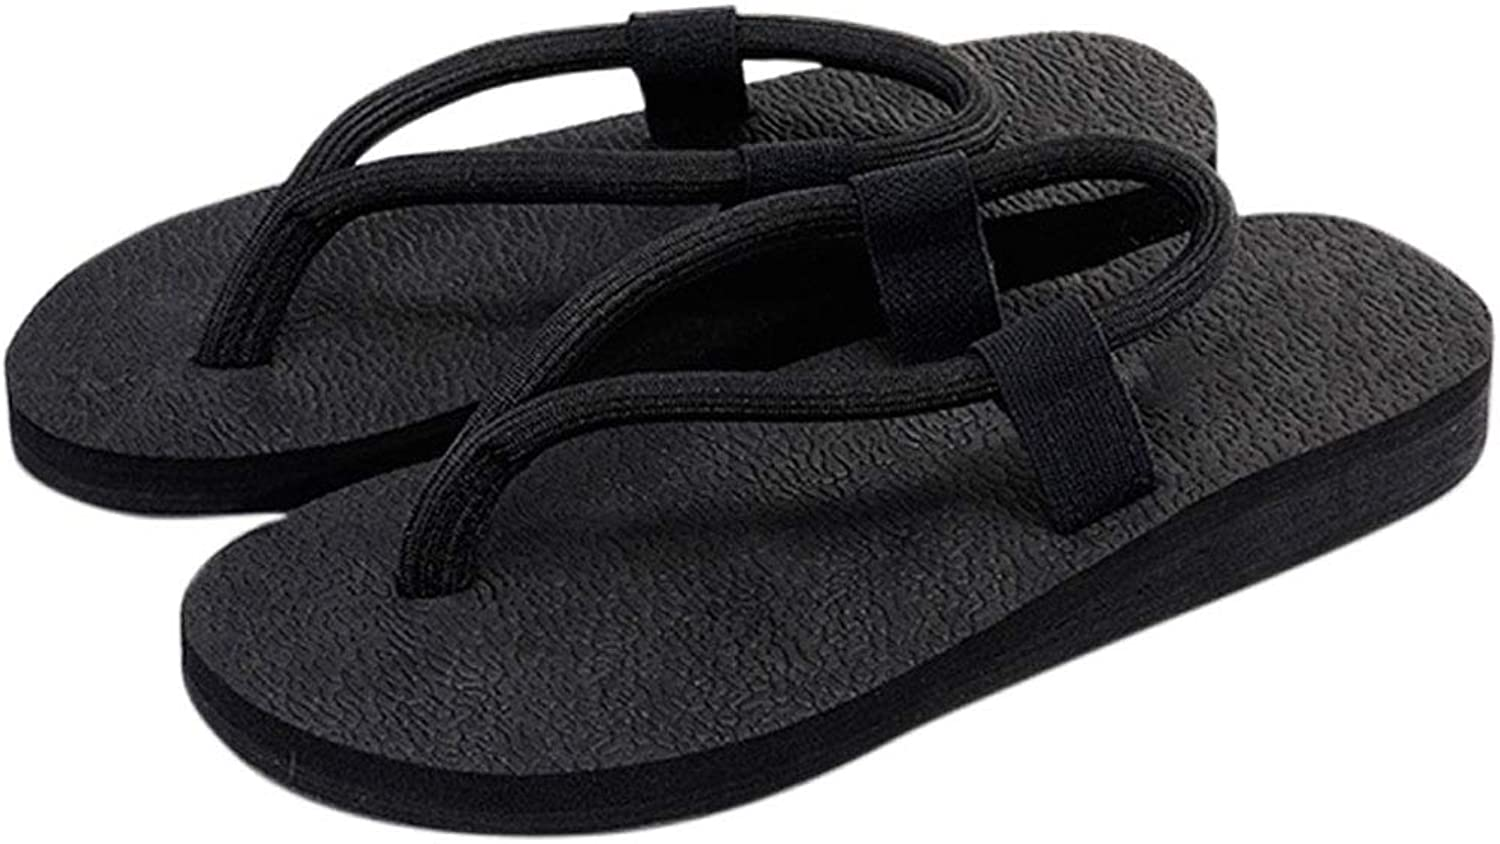 HUYP Black Slippers Female Summer Wear Fashion Beach shoes Flip Flops Female Sandals and Slippers (Size   5.5 US)